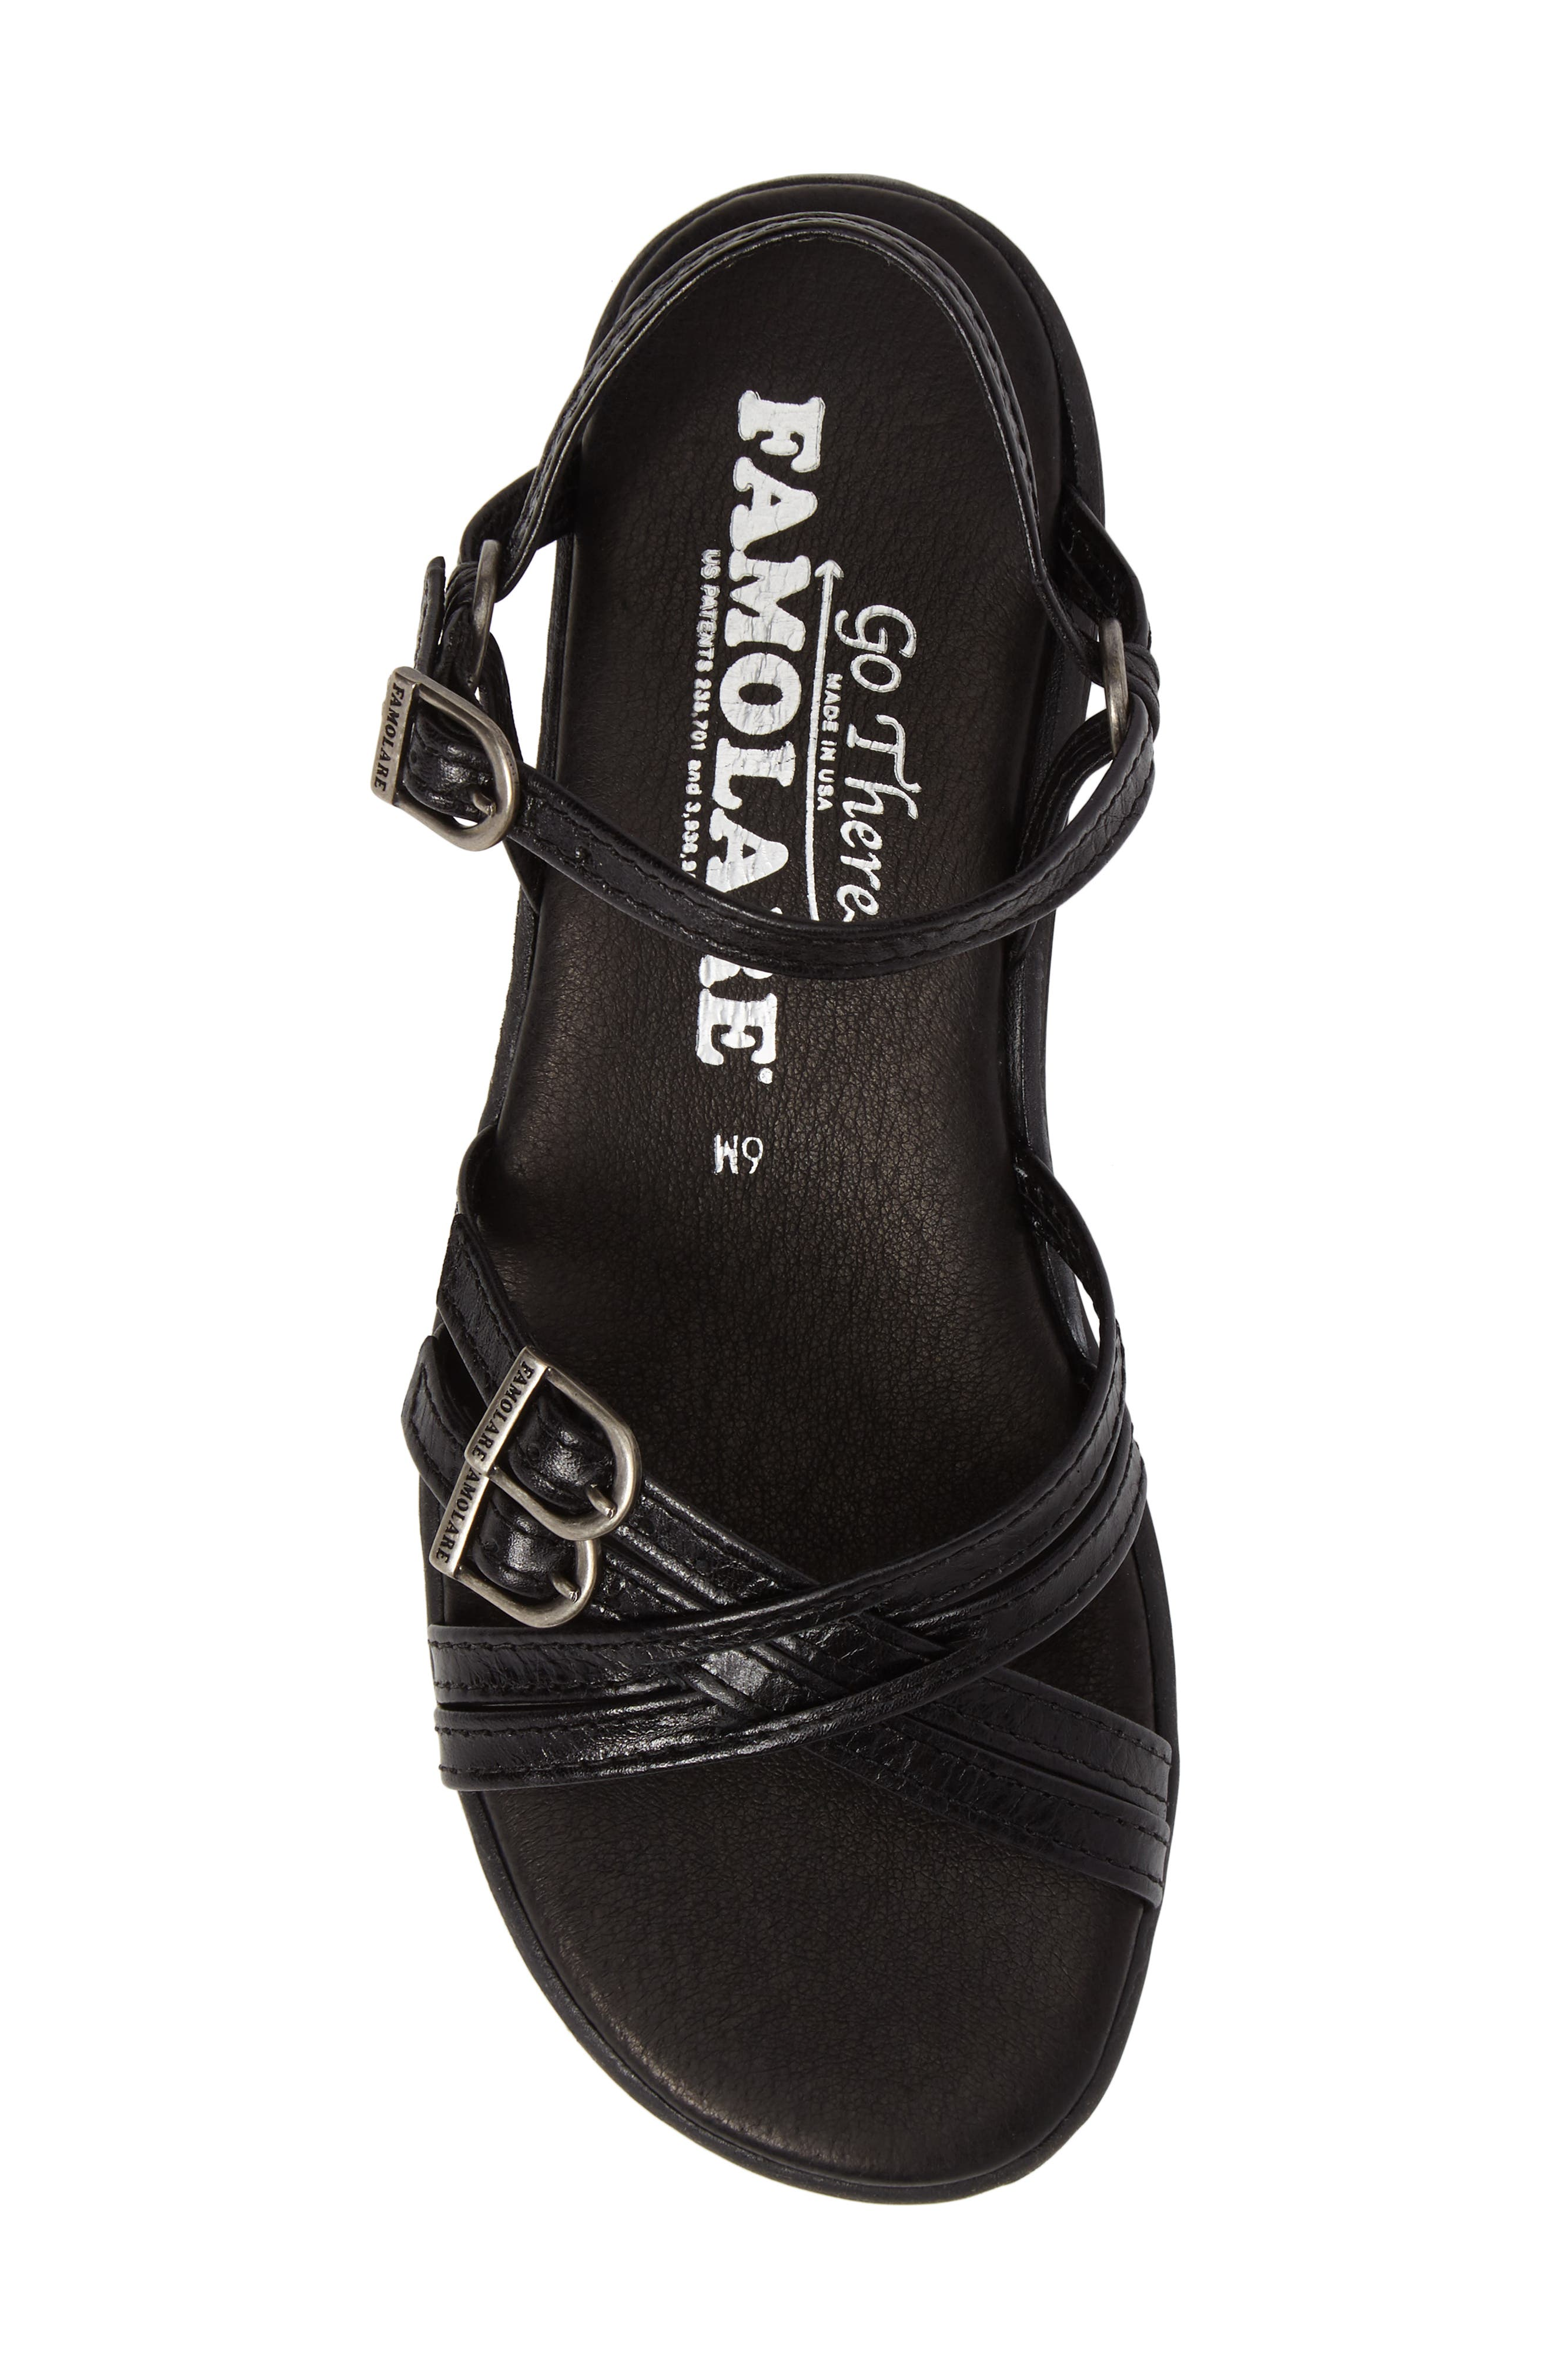 Strapsody Buckle Sandal,                             Alternate thumbnail 5, color,                             COAL LEATHER